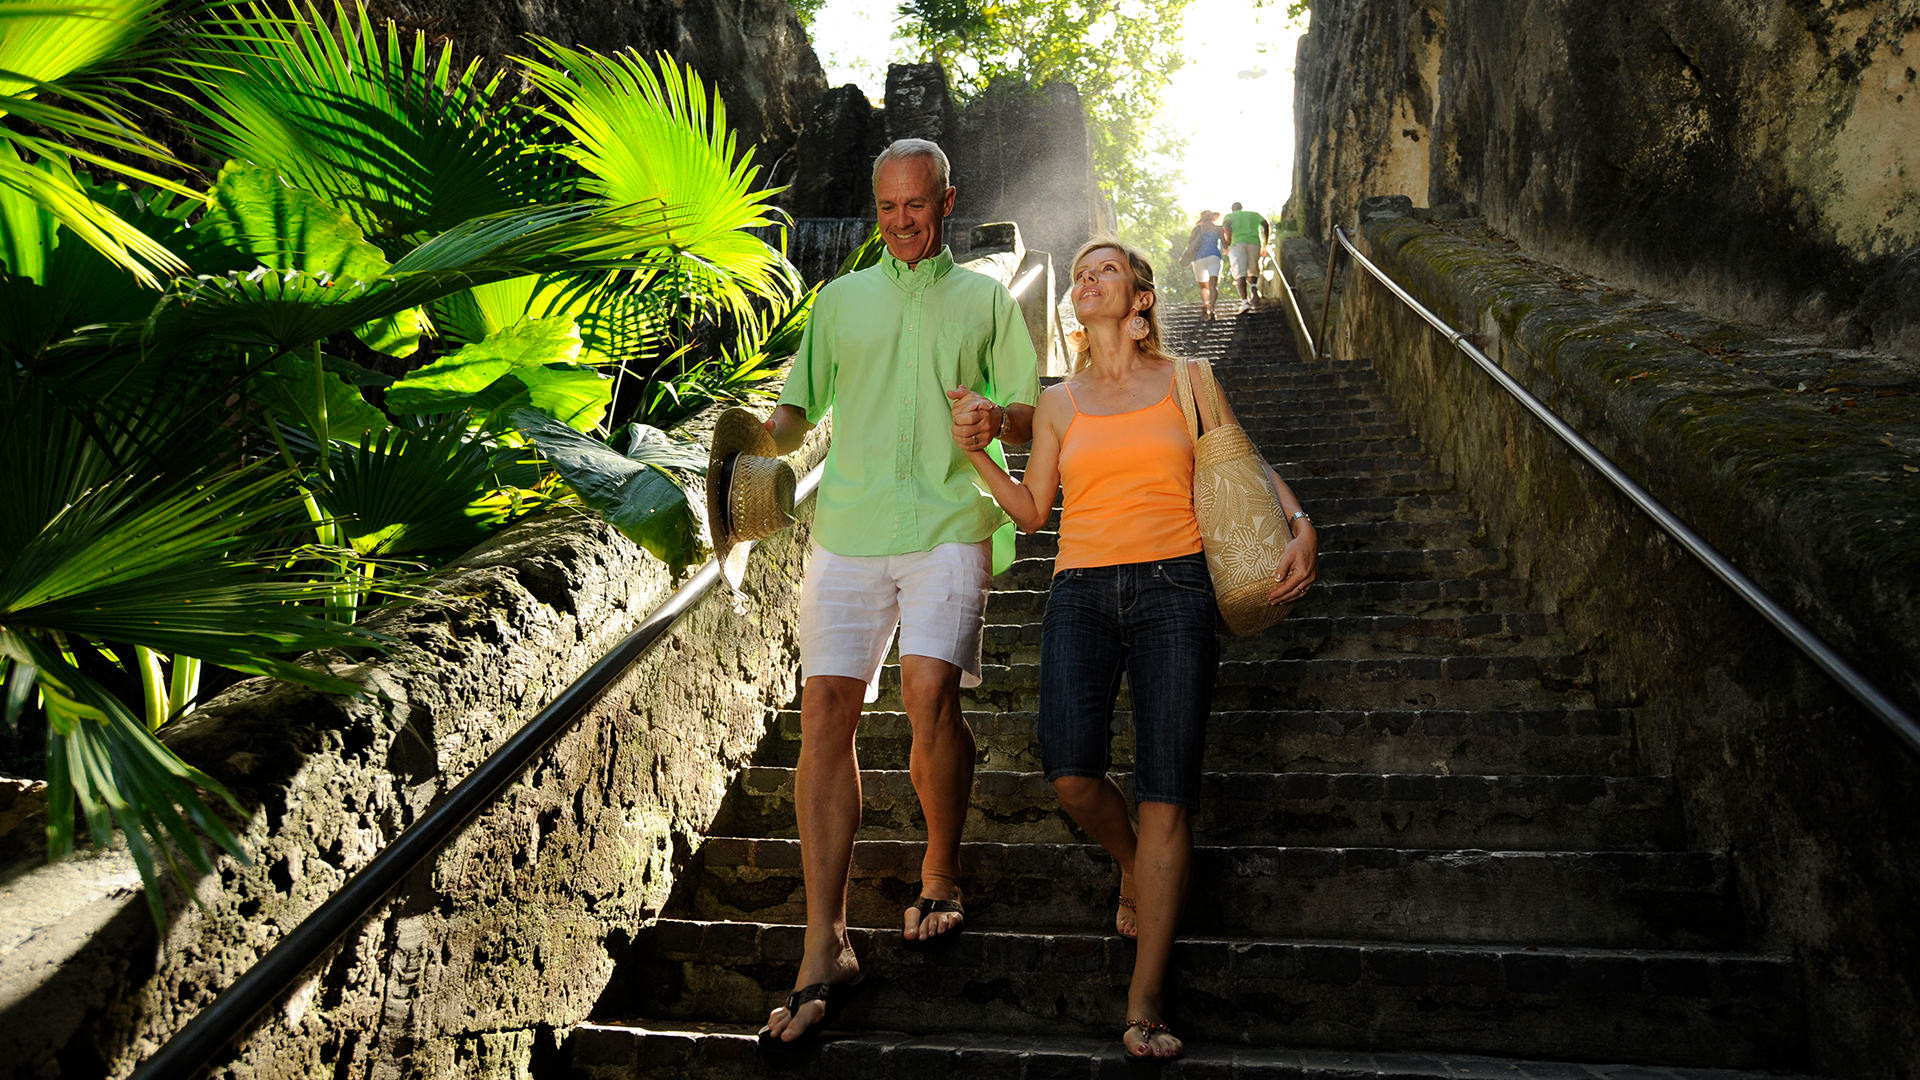 The Queen S Staircase Nassau Paradise Island